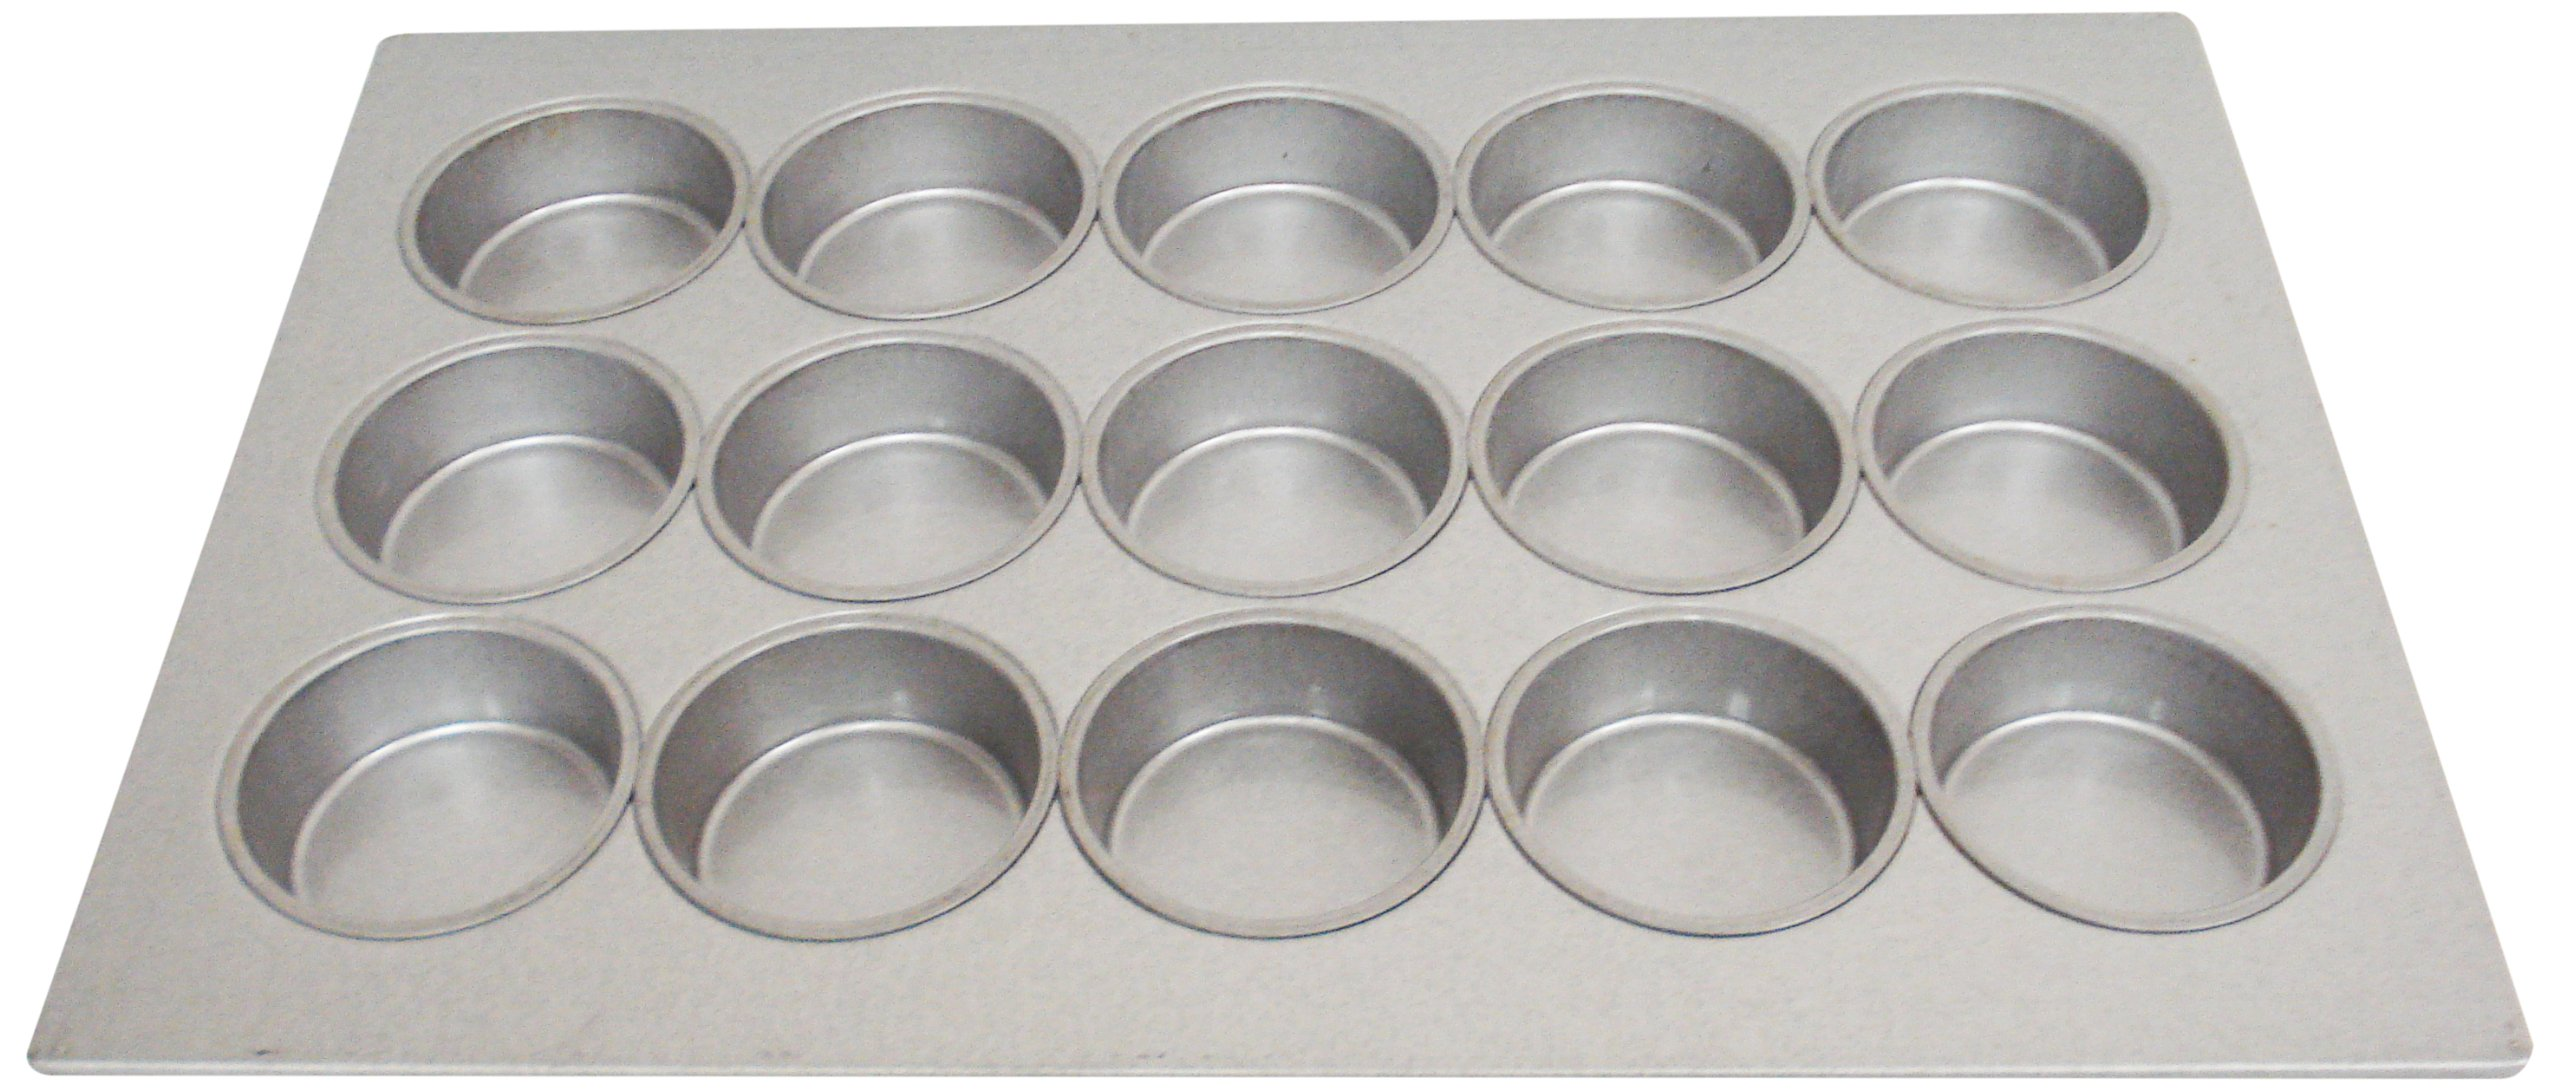 Magna Industries 15362 22-Gauge Aluminized Steel Mini Cake Muffin Pan, 4-1/4'' Diameter, 3 x 5 Cups Layout (Pack of 6)